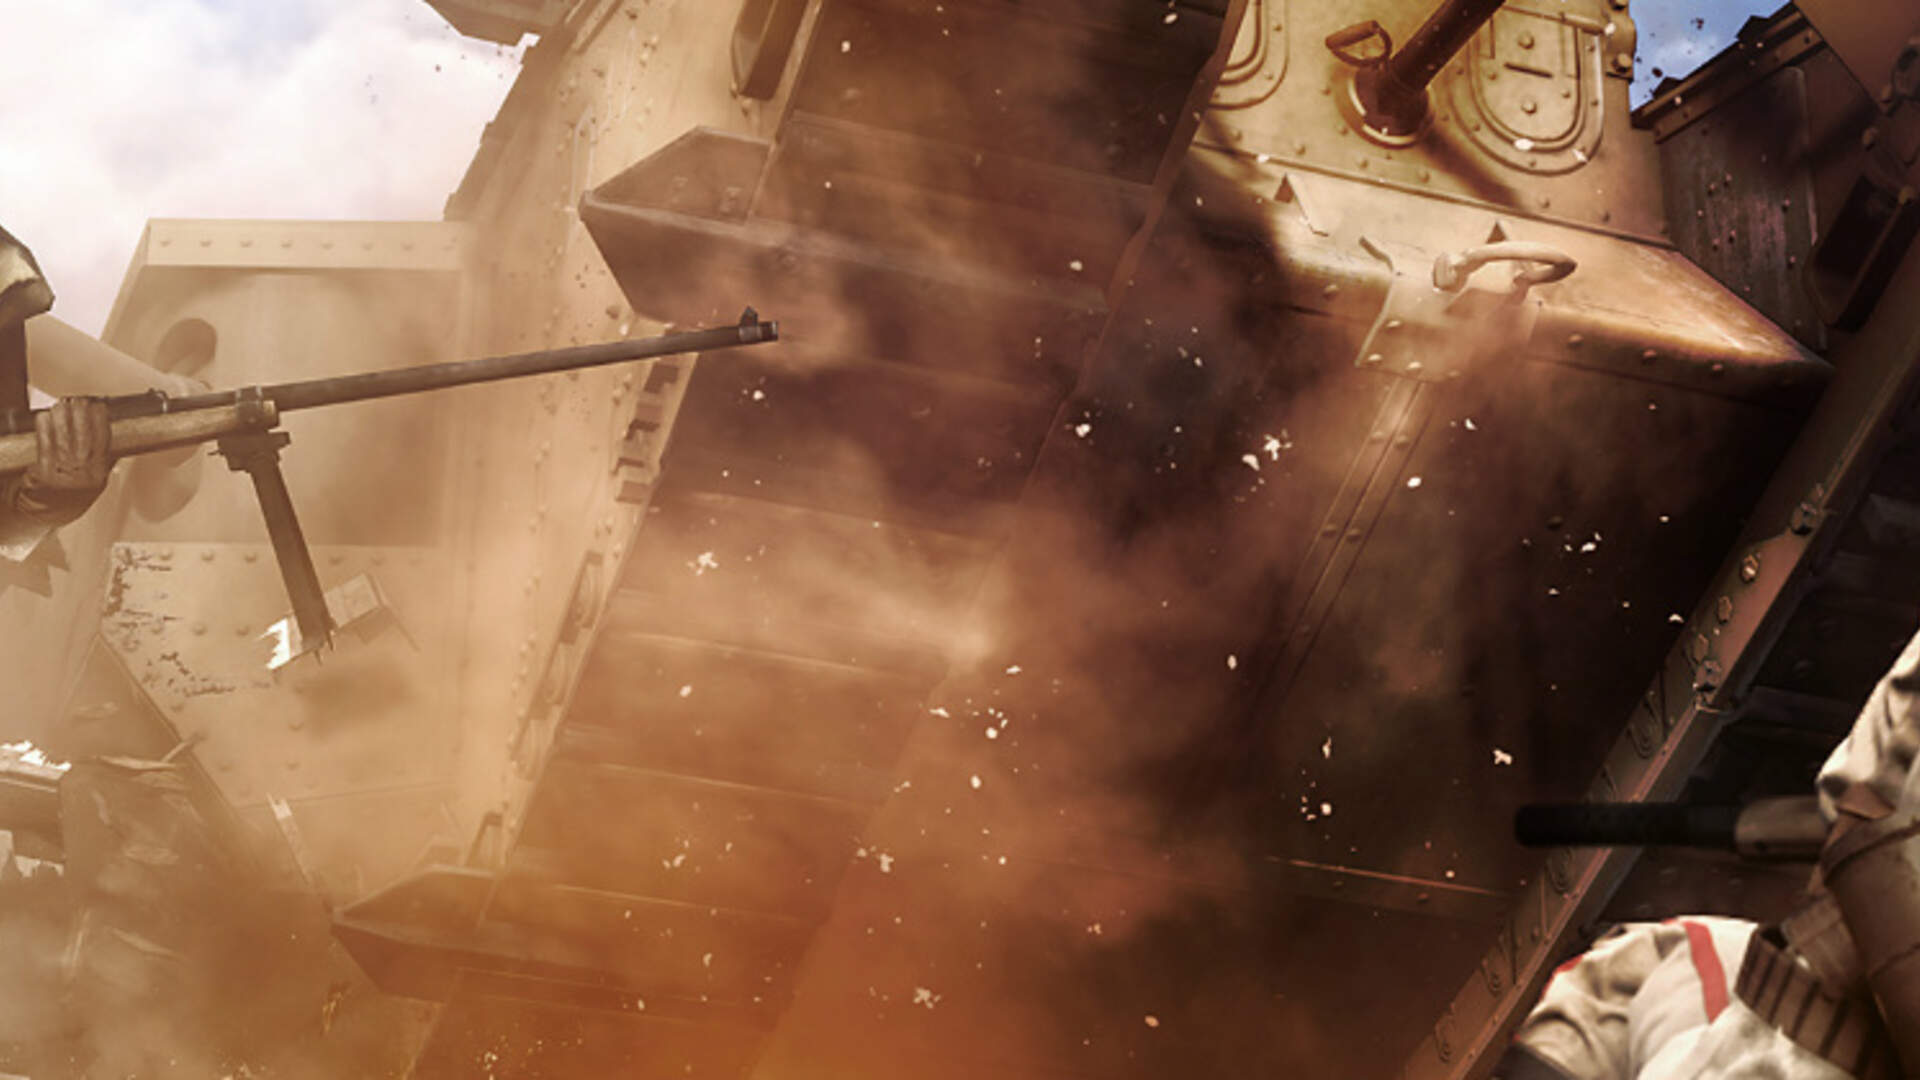 Battlefield 1 Premium Pass Going Free for a Limited Time, After the Battlefield 5 Beta Ends